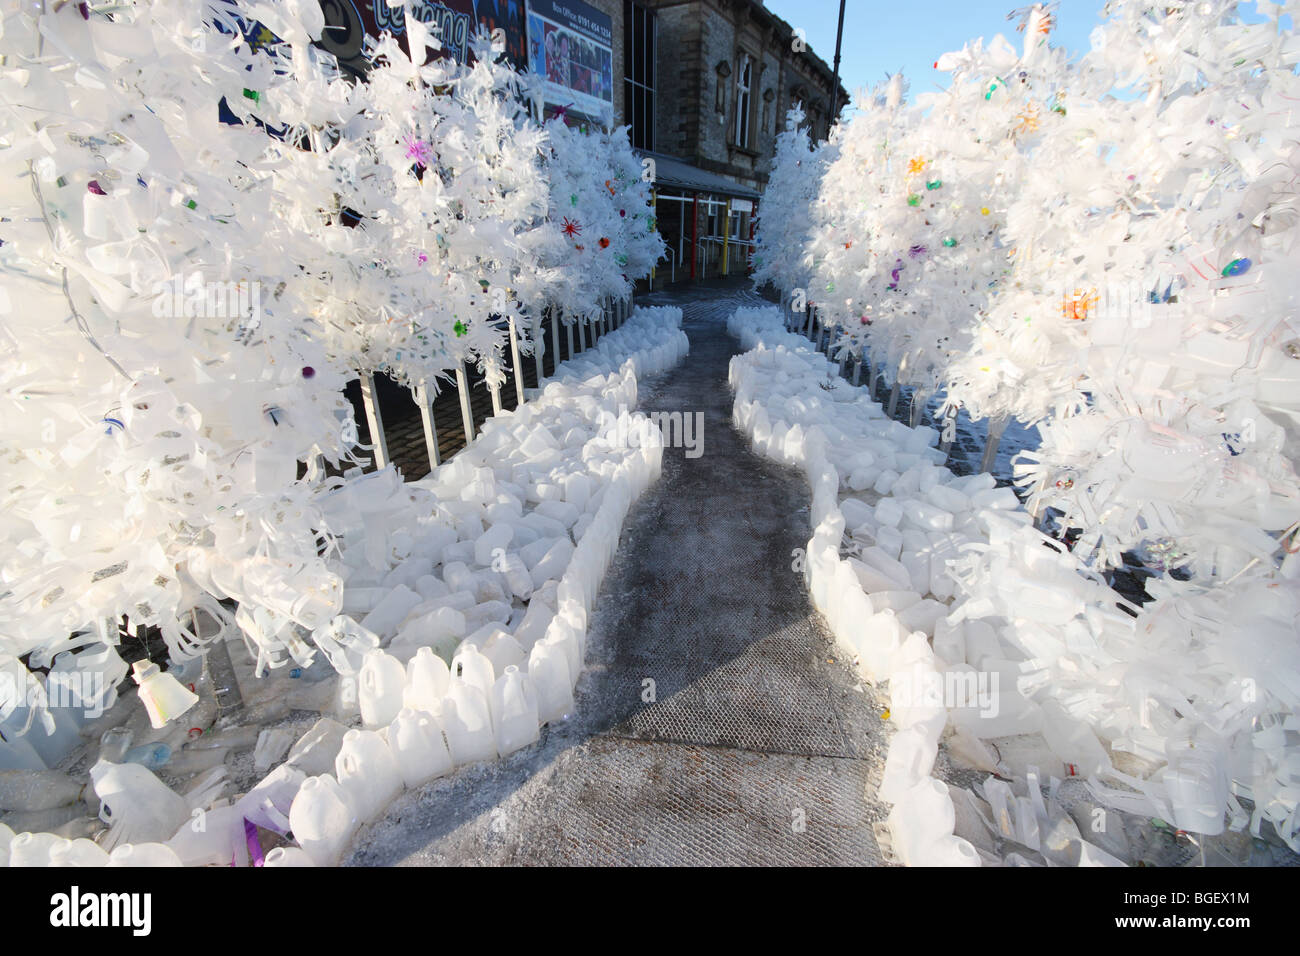 Winter Wasteland - a sculpture made from discarded plastic bottles at the Customs House, South Shields, England, - Stock Image